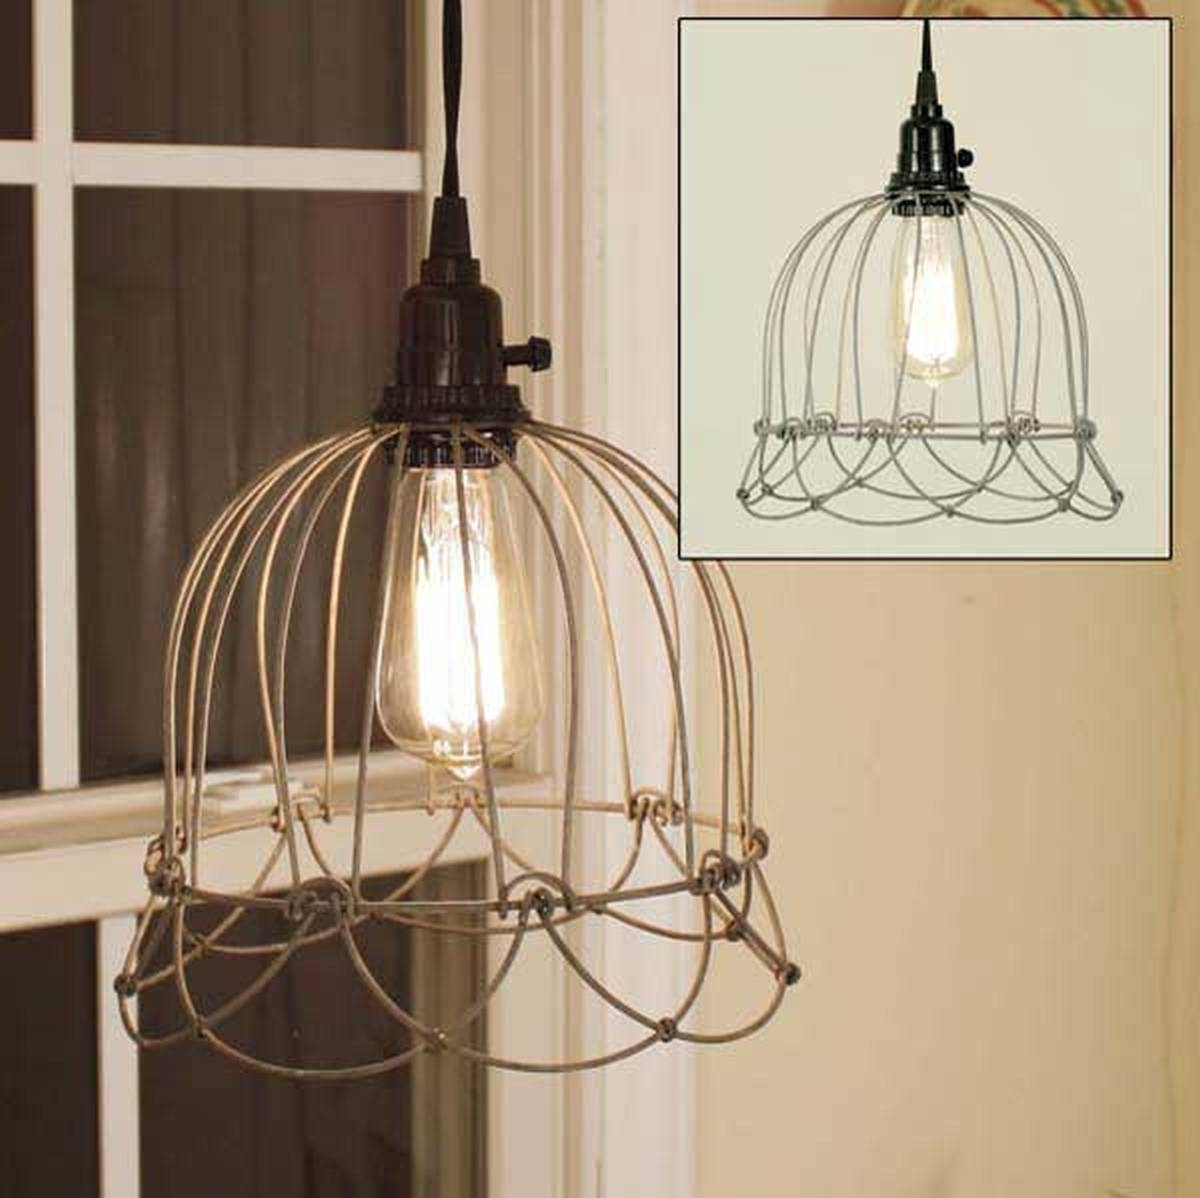 Amazing Wire Pendant Lights 23 For Your Battery Operated Pendant Throughout Battery Operated Pendant Lights (View 8 of 15)